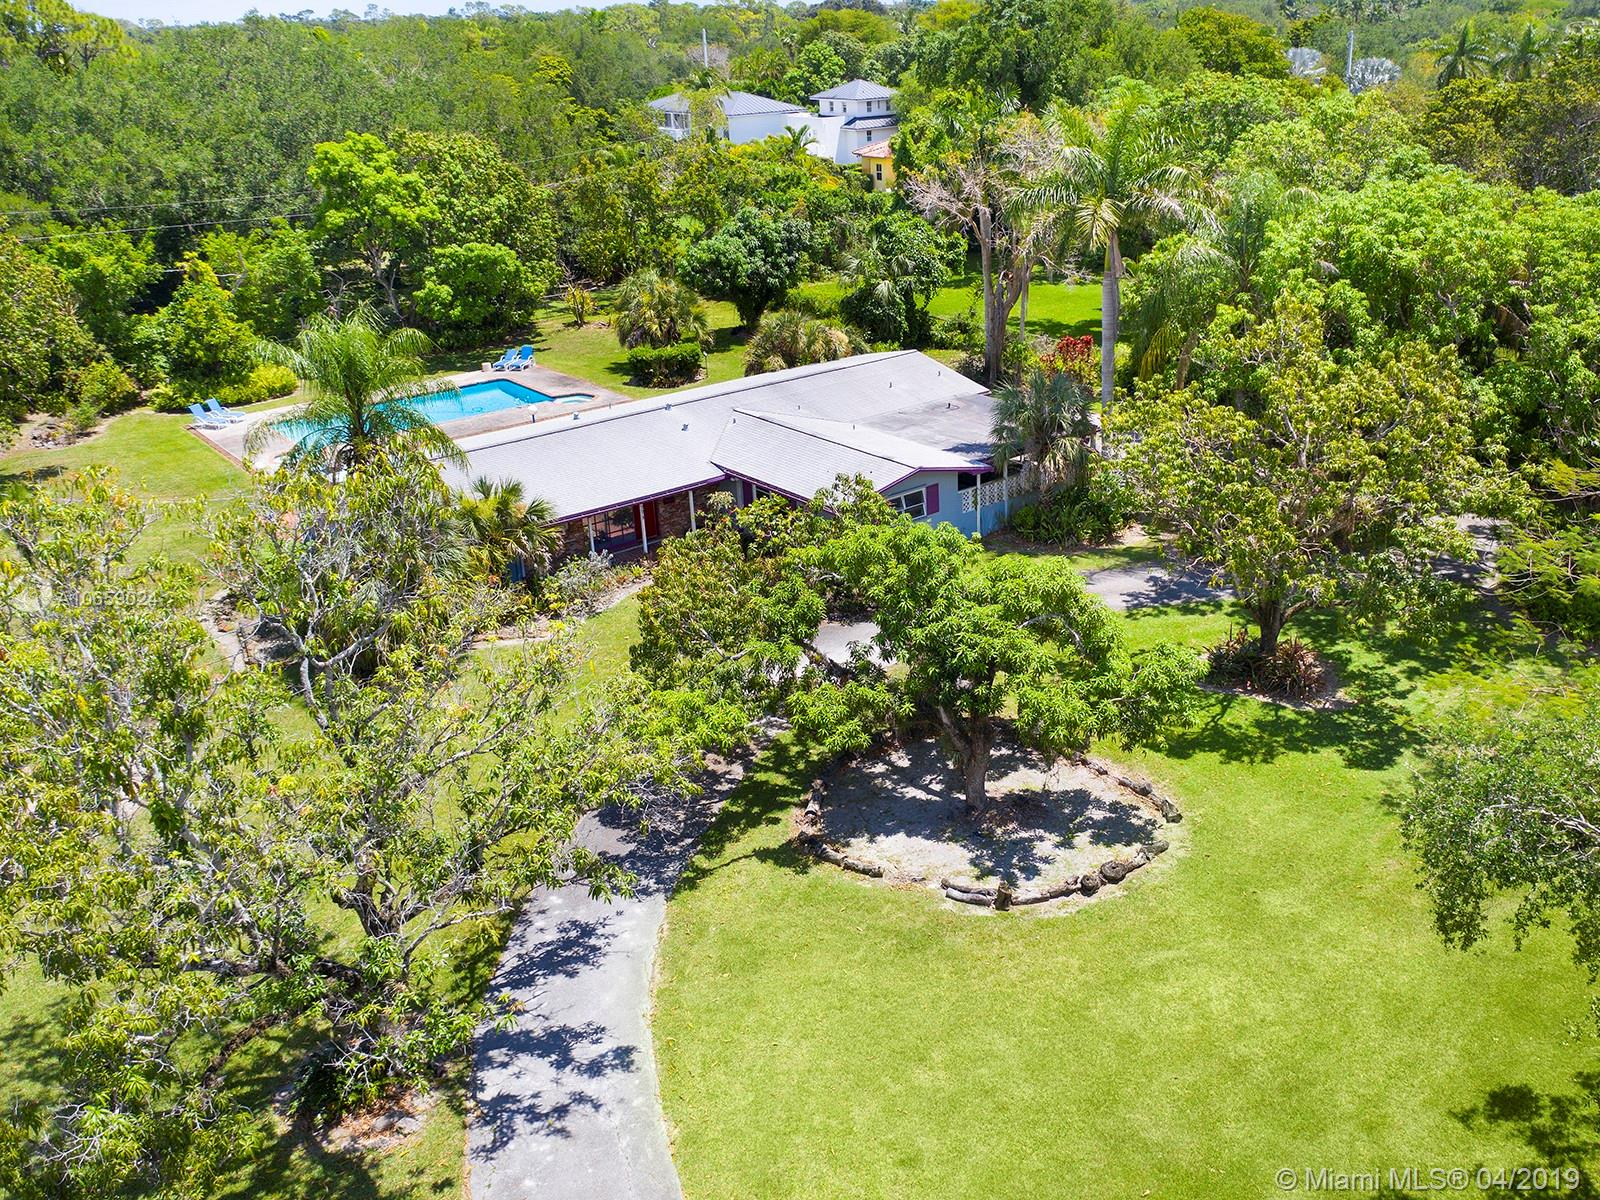 Exceptionally Well Located Acre Lot With Great Dimensions In The<Br />Northern Part Of Pinecrest. Existing 50'S Blt 3/2 Can Be Added To Or Build Your Dream Home In A<Br />Fabulous Location Surrounded By Many Acre And Half Acre Multi-Million<Br />Dollar New Mansions.  Over Sized Deep (8.5 Ft) Pool Far Enough Away<Br />From The House To Accommodate Any New Construction. Truly A Beautiful<Br />And Inviting Property.